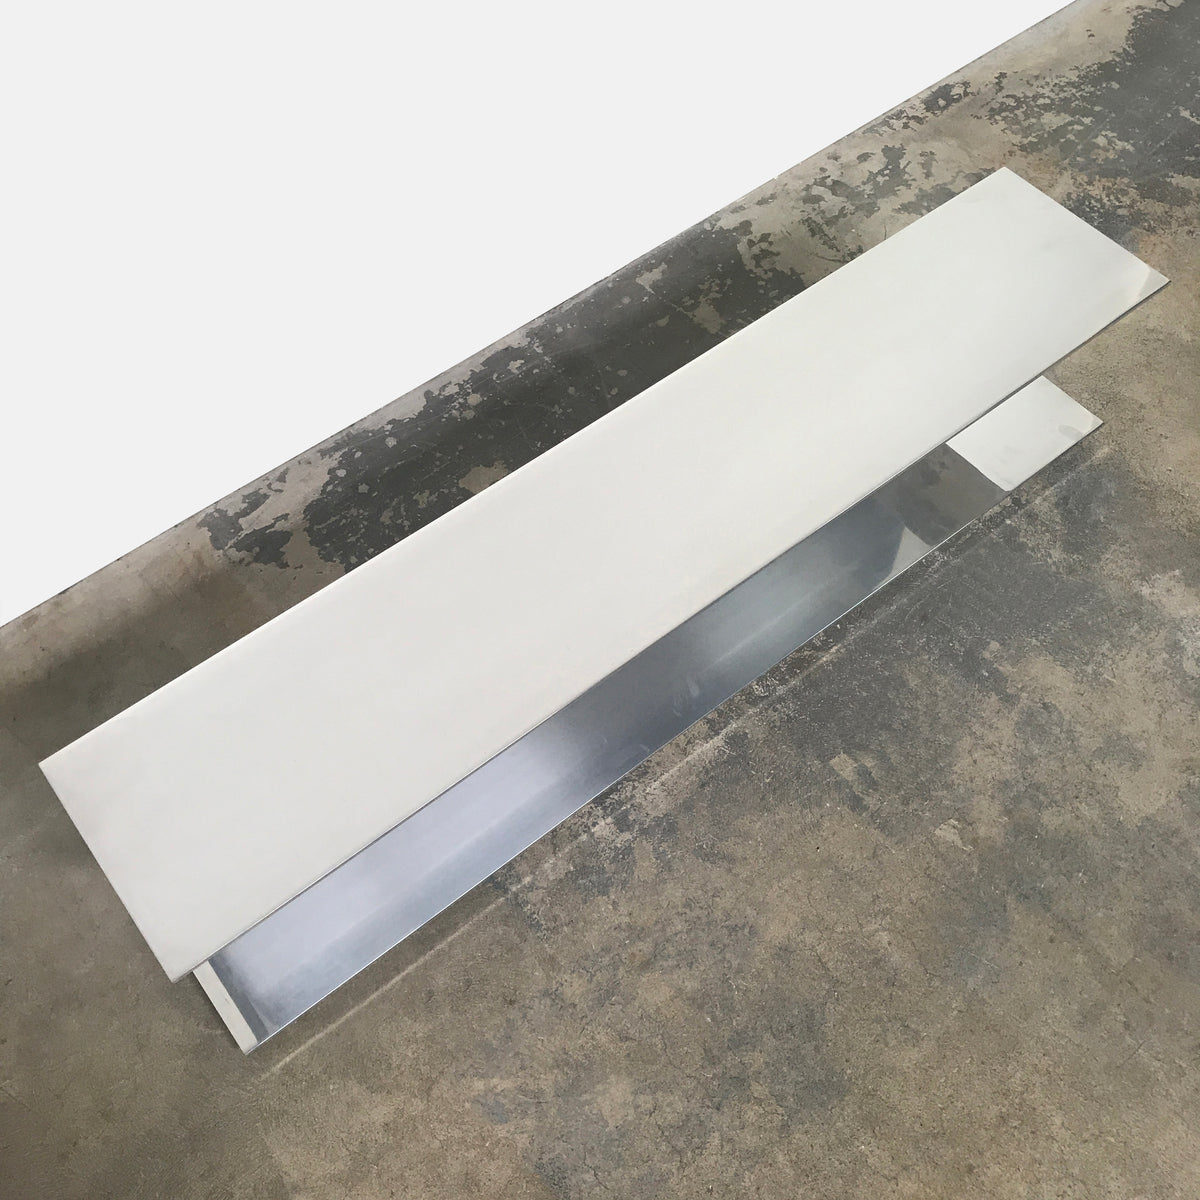 Origamibook Aluminum Wall Shelf (2 in stock)